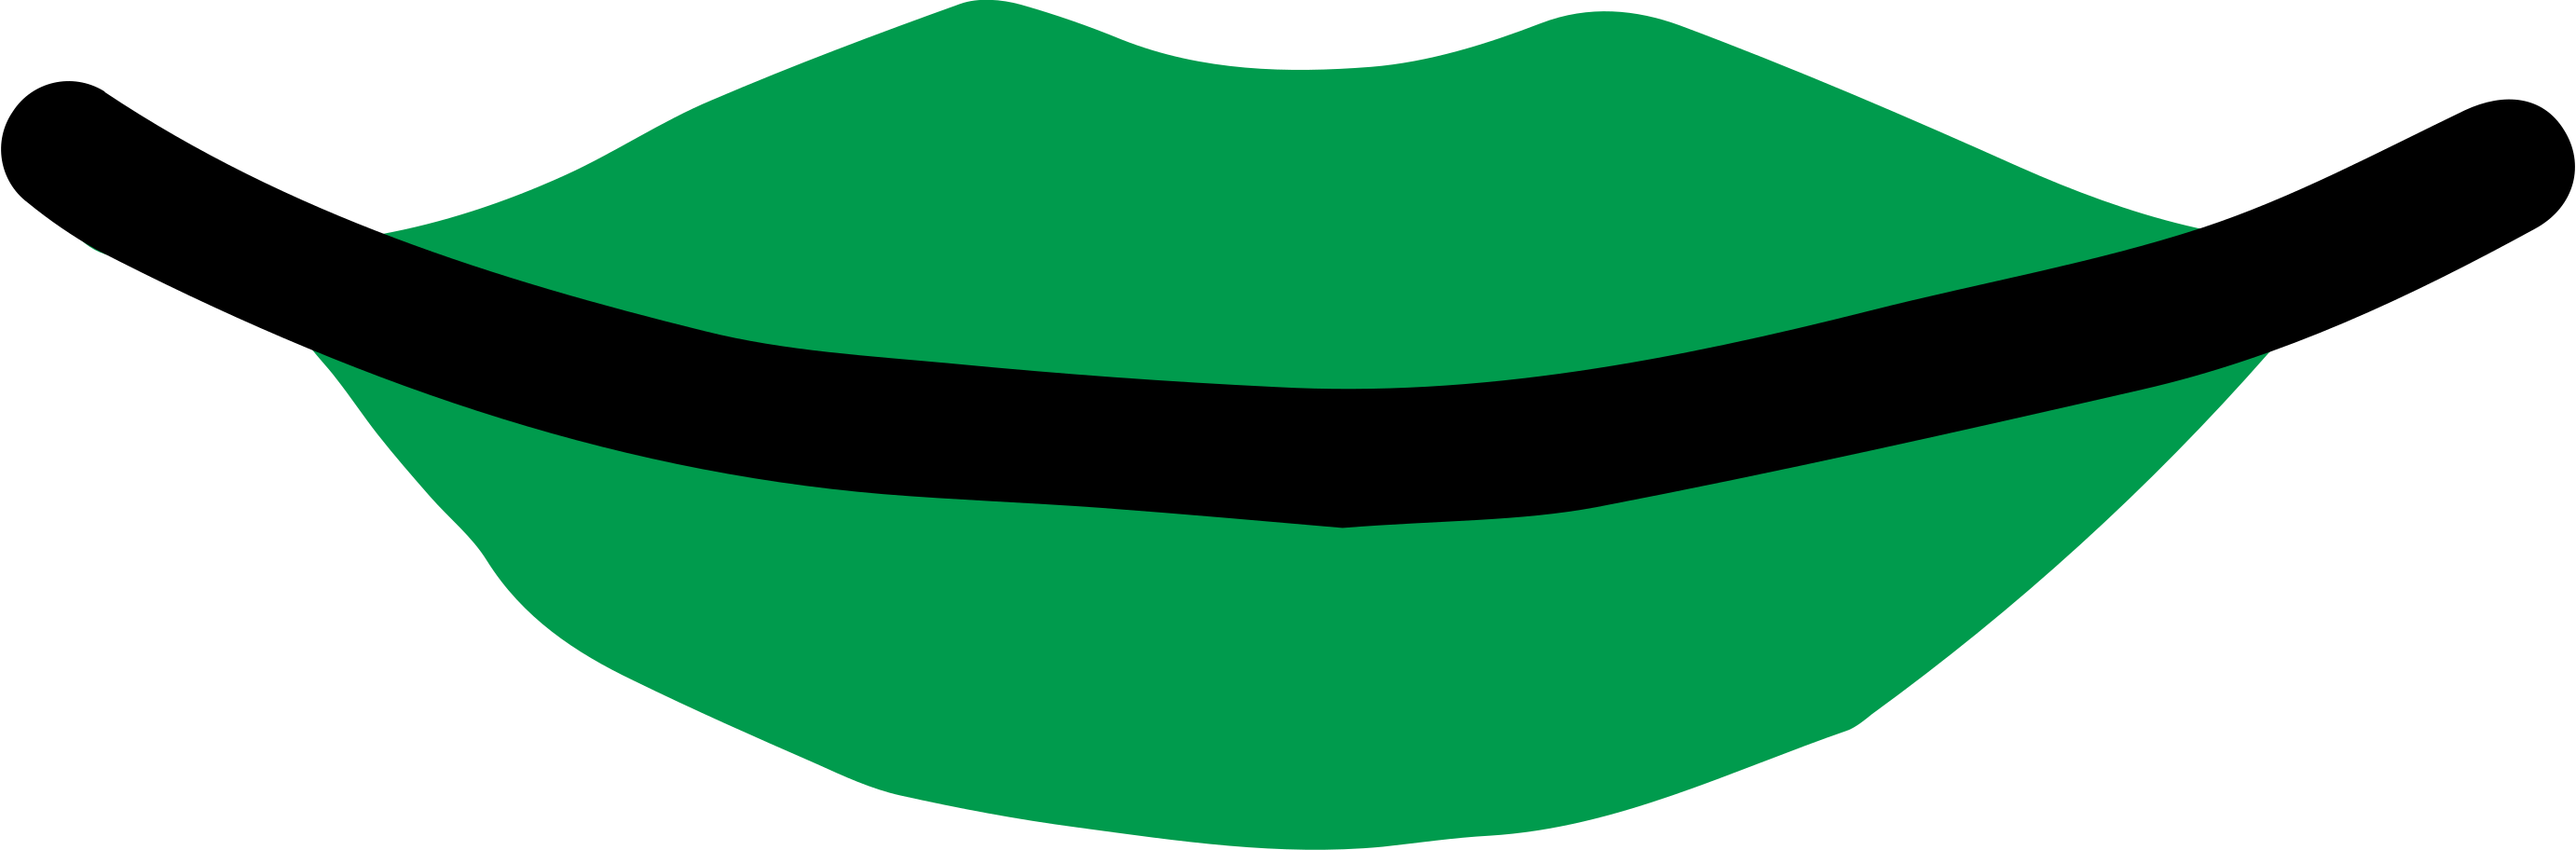 lips green Clipart illustration in PNG, SVG